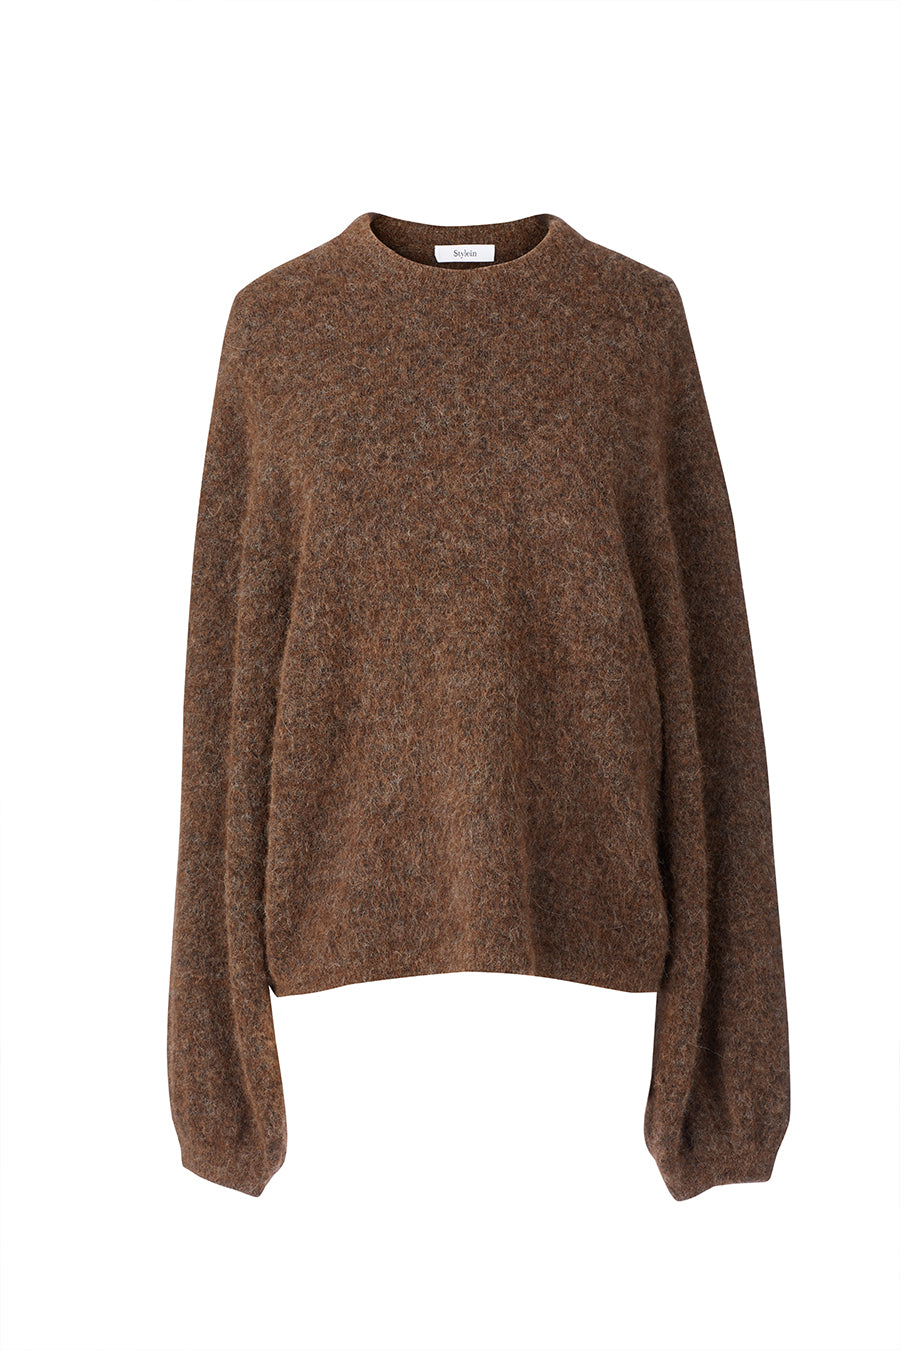 EIJA SWEATER - BROWN